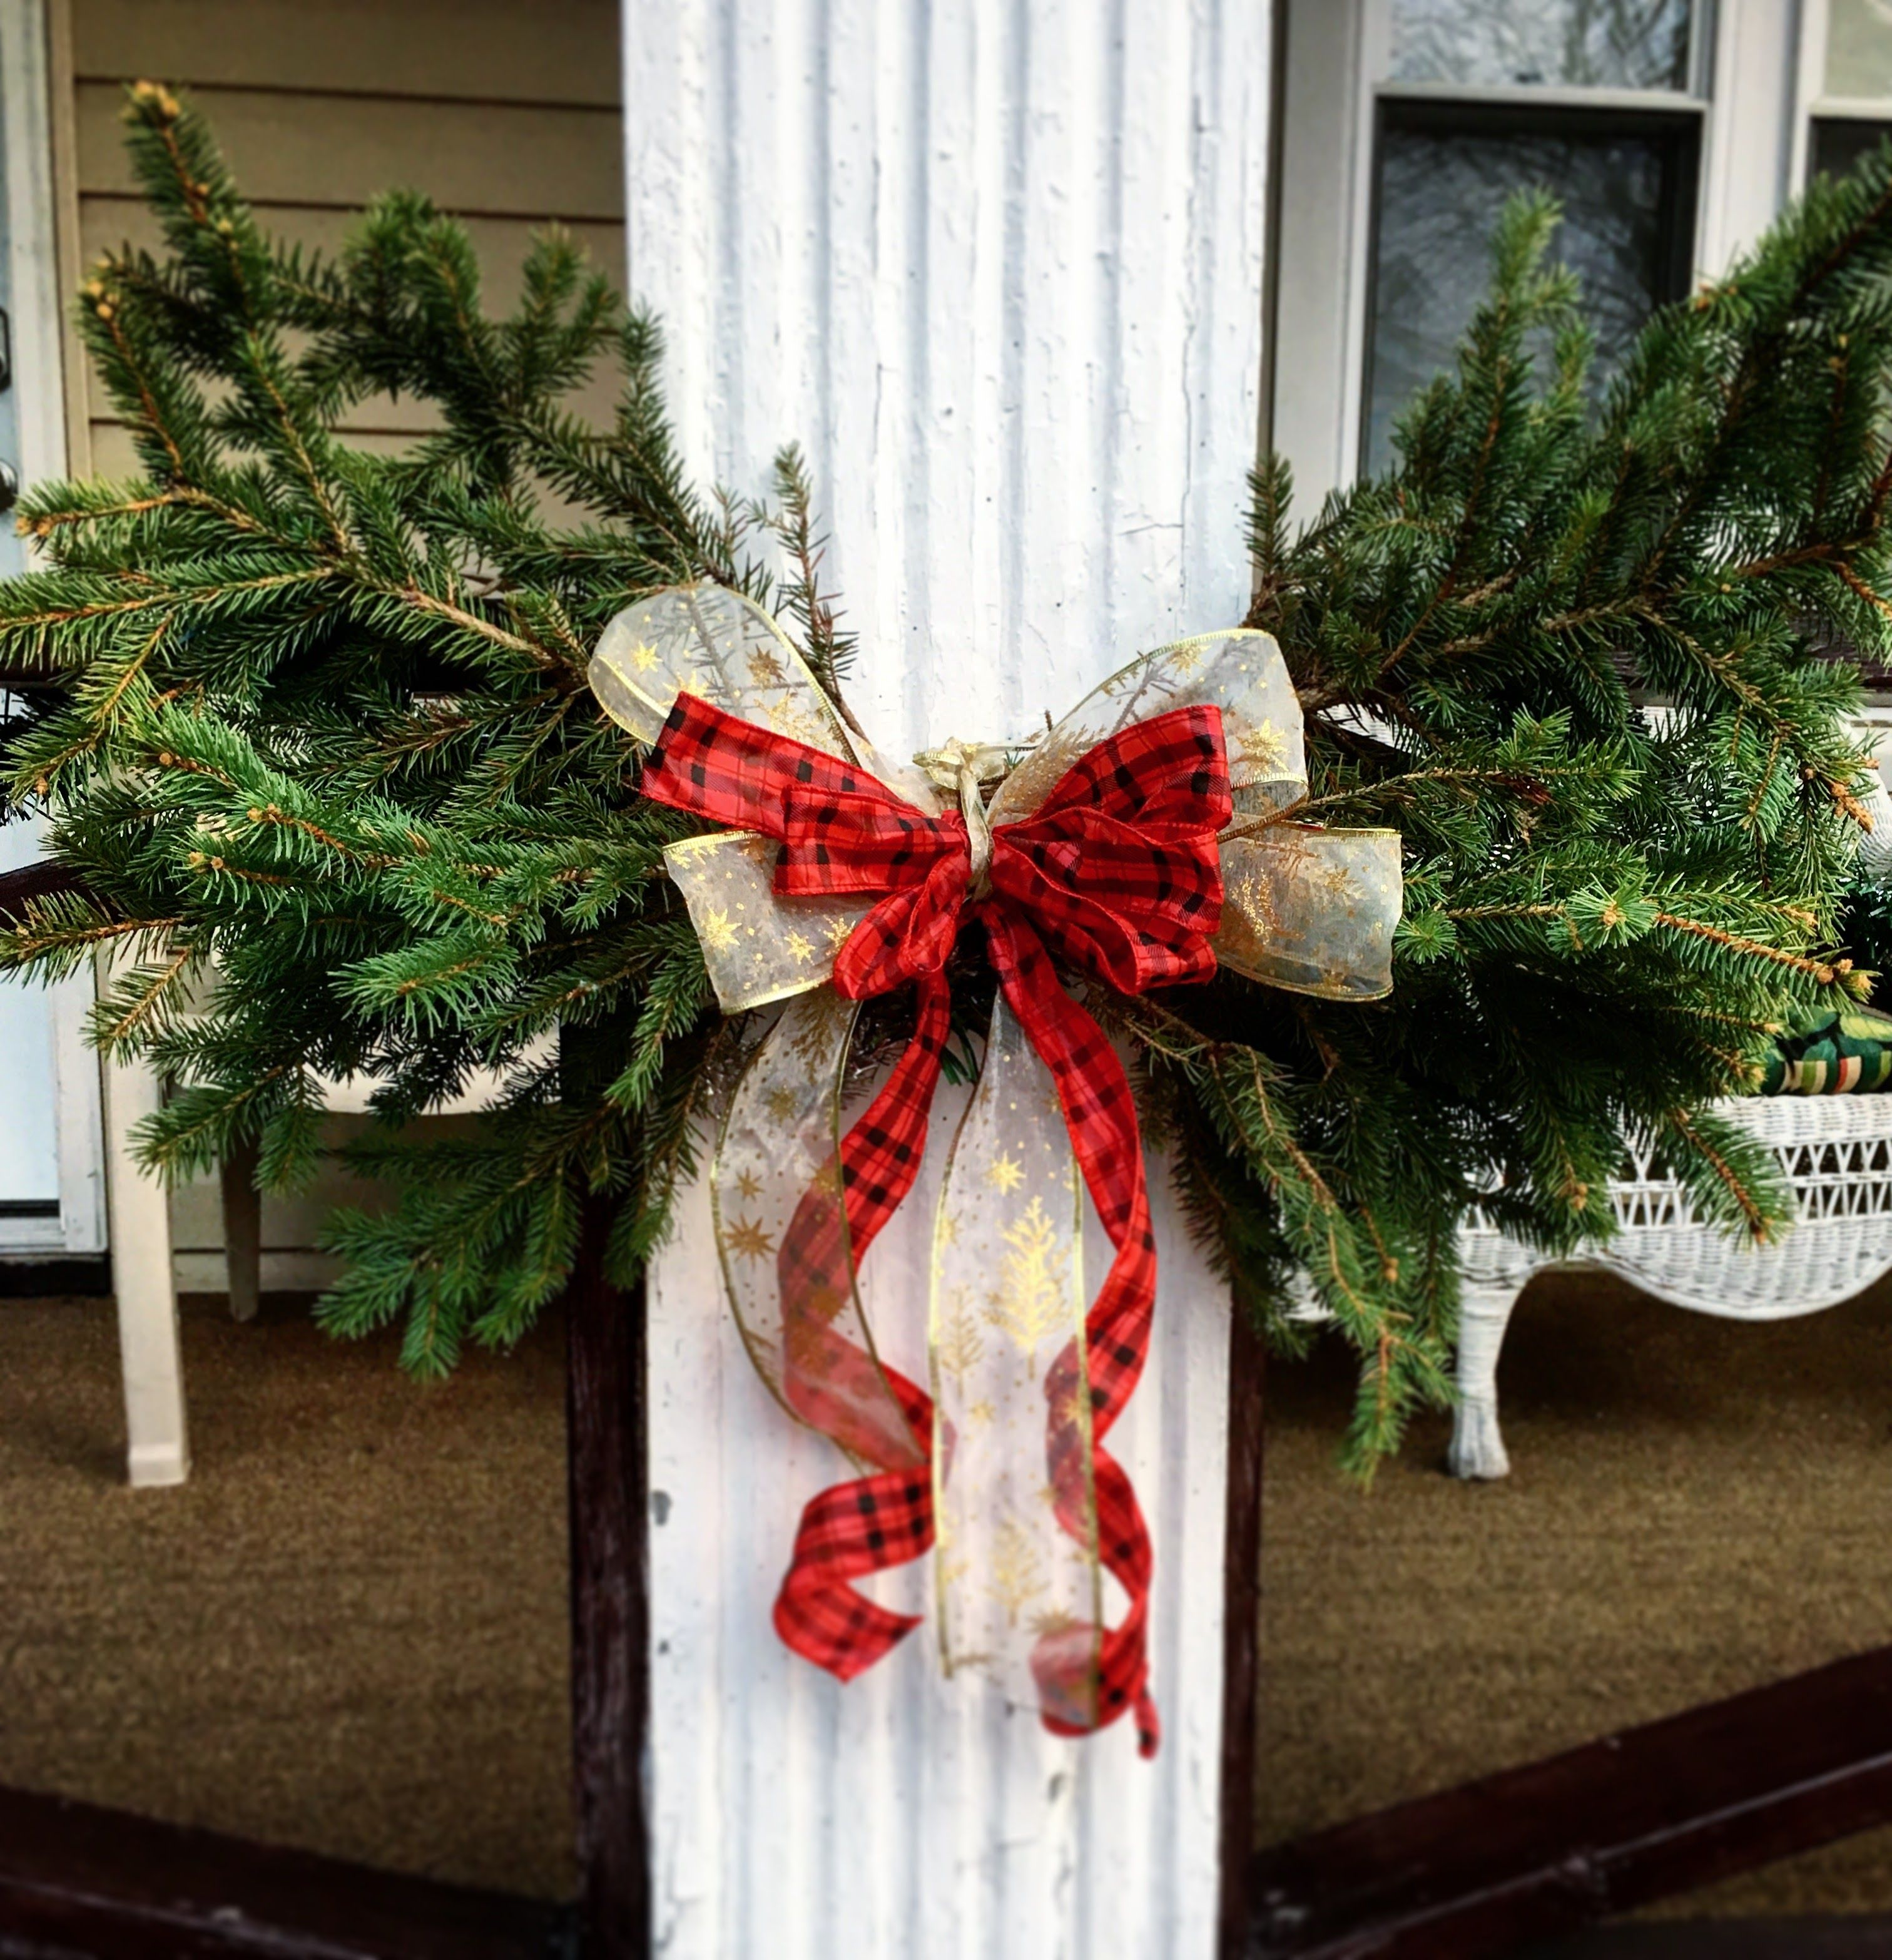 Porch Swag Made With Leftover Christmas Tree Branches Leftover Christmas Tree Christmas Deco Christmas Tree Branches